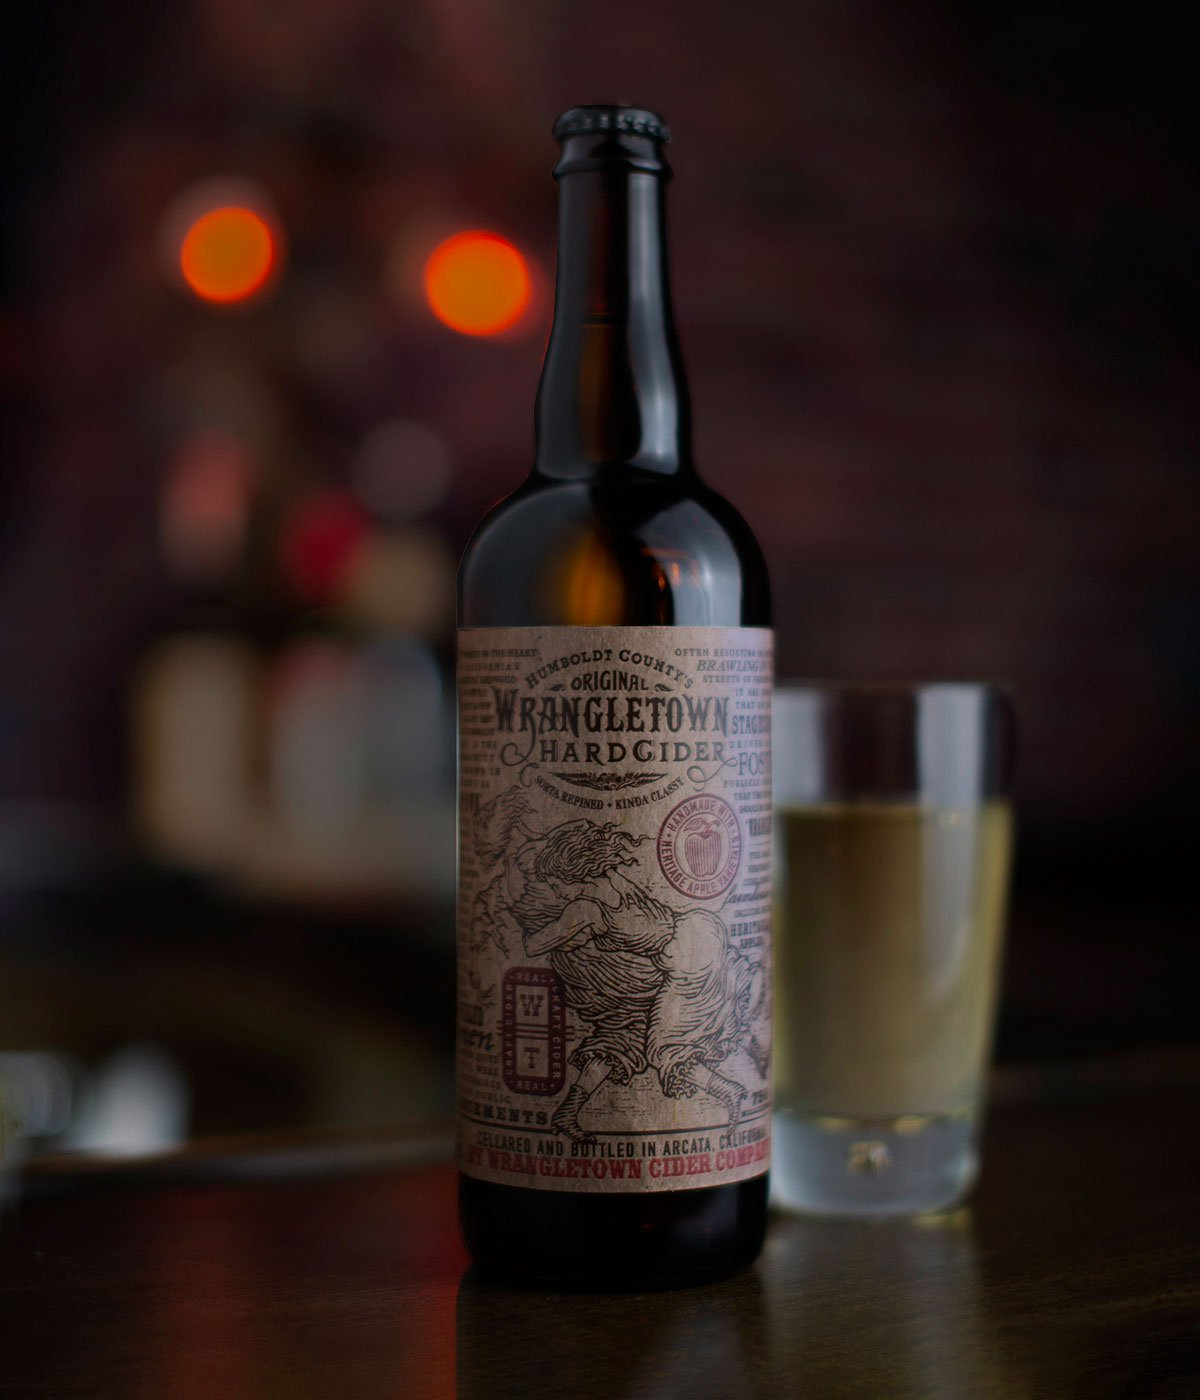 Wrangletown Hard Cider by Tony Auston